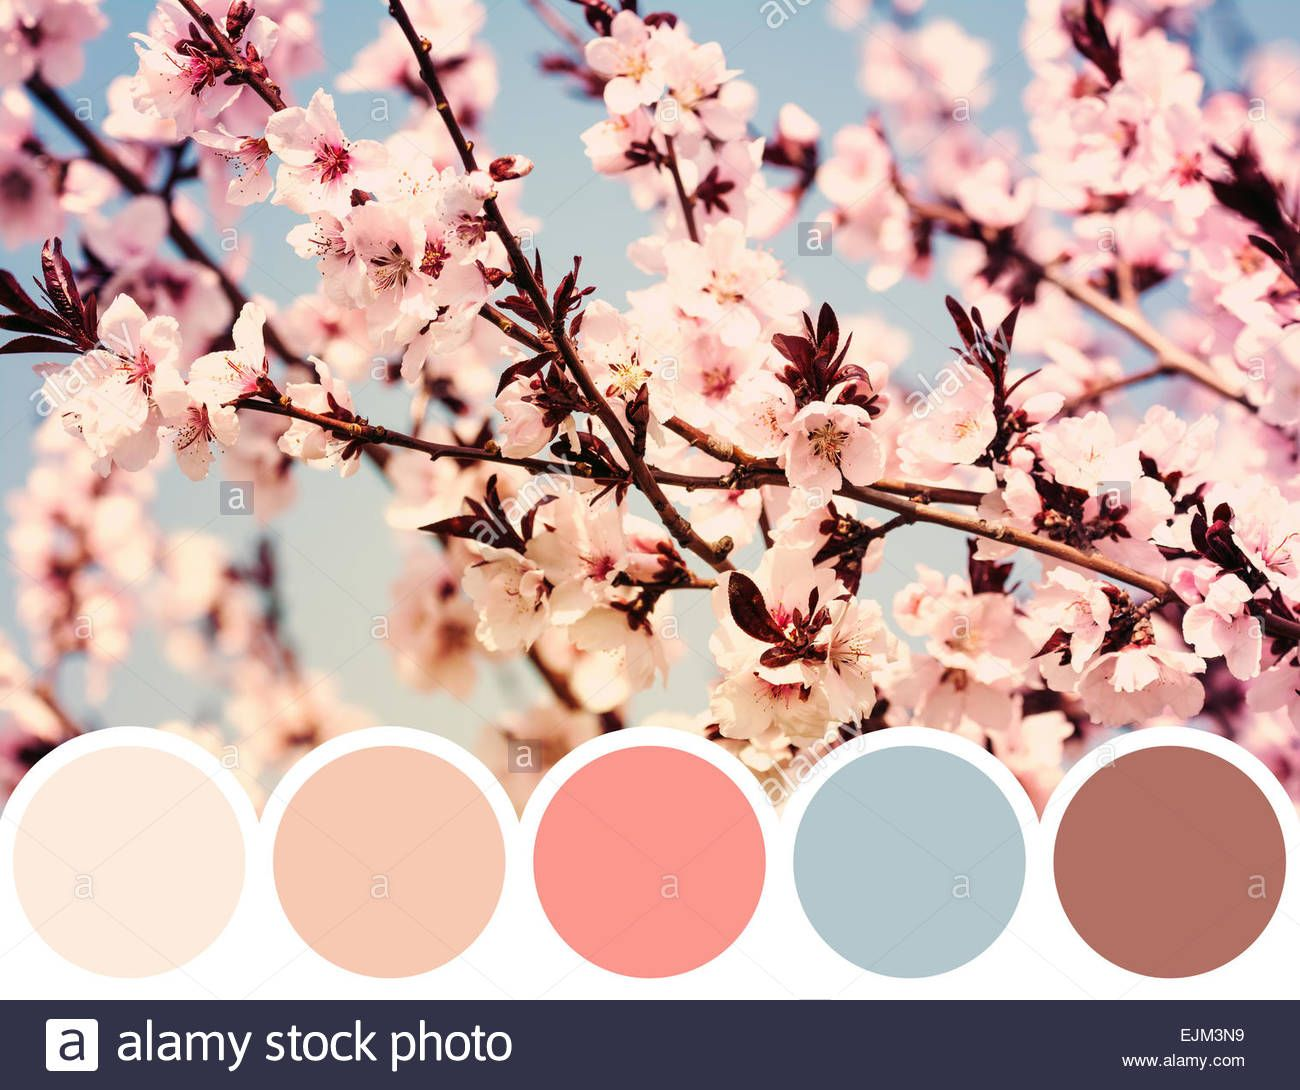 Download This Stock Image Color Palette Of Spring Cherry Tree Flowers Ejm3n9 From Alamy S Library Of Millions Of Hi Color Palette Color Vibe Japanese Colors